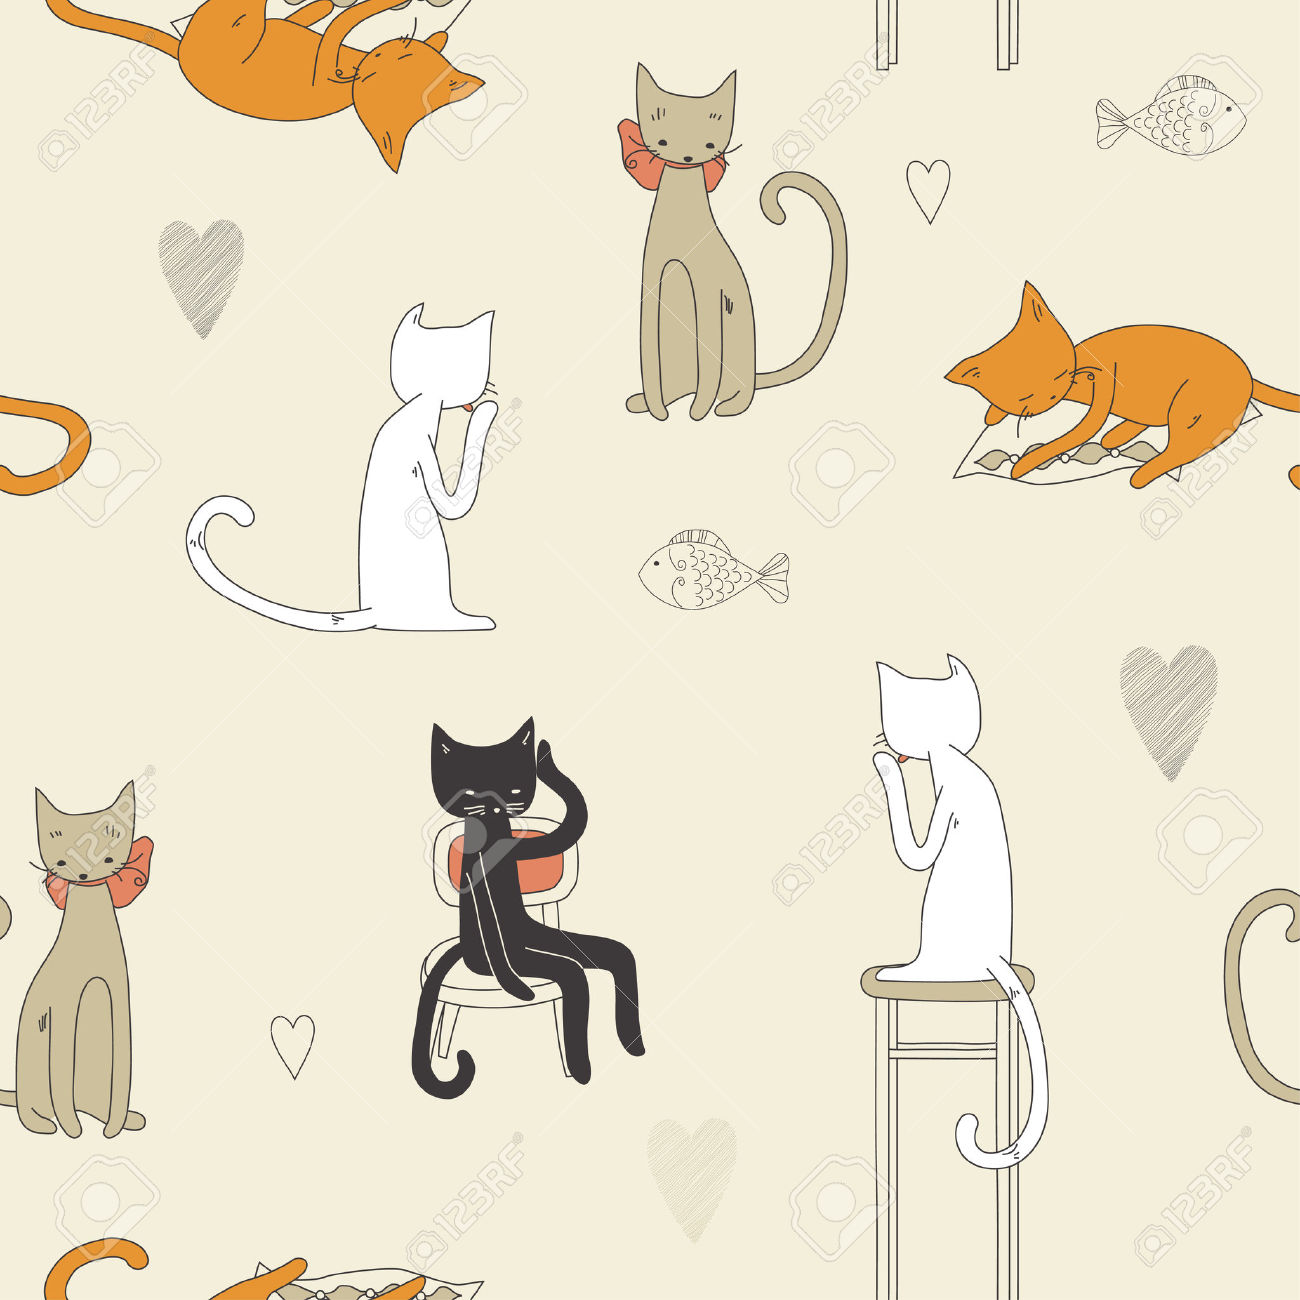 1000+ images about Cat Patterns on Pinterest.